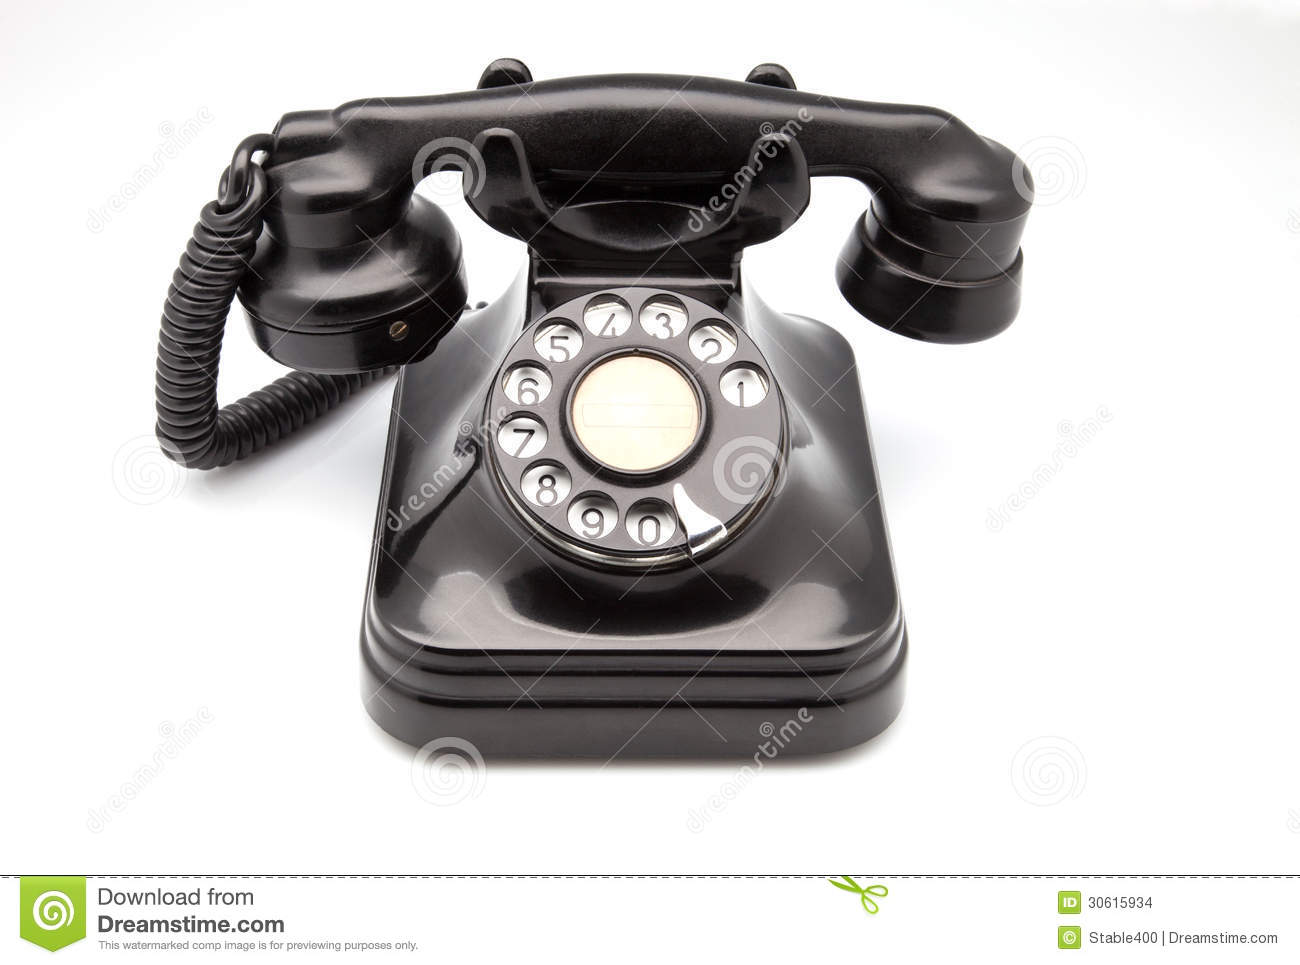 Ancient Phone Stock Images  Image 30615934. Assisted Living Sherman Tx Italian Small Car. Where Can I Apply For A Credit Card. Stomach Operation To Lose Weight. Medical Billing Companies In New York. Get Massage Therapy License Intuit Pay Stubs. Personal Insurance Services Create A Macro. Best Ms Finance Programs Best Schools For Msw. Inexpensive All Inclusive Vacations For Families